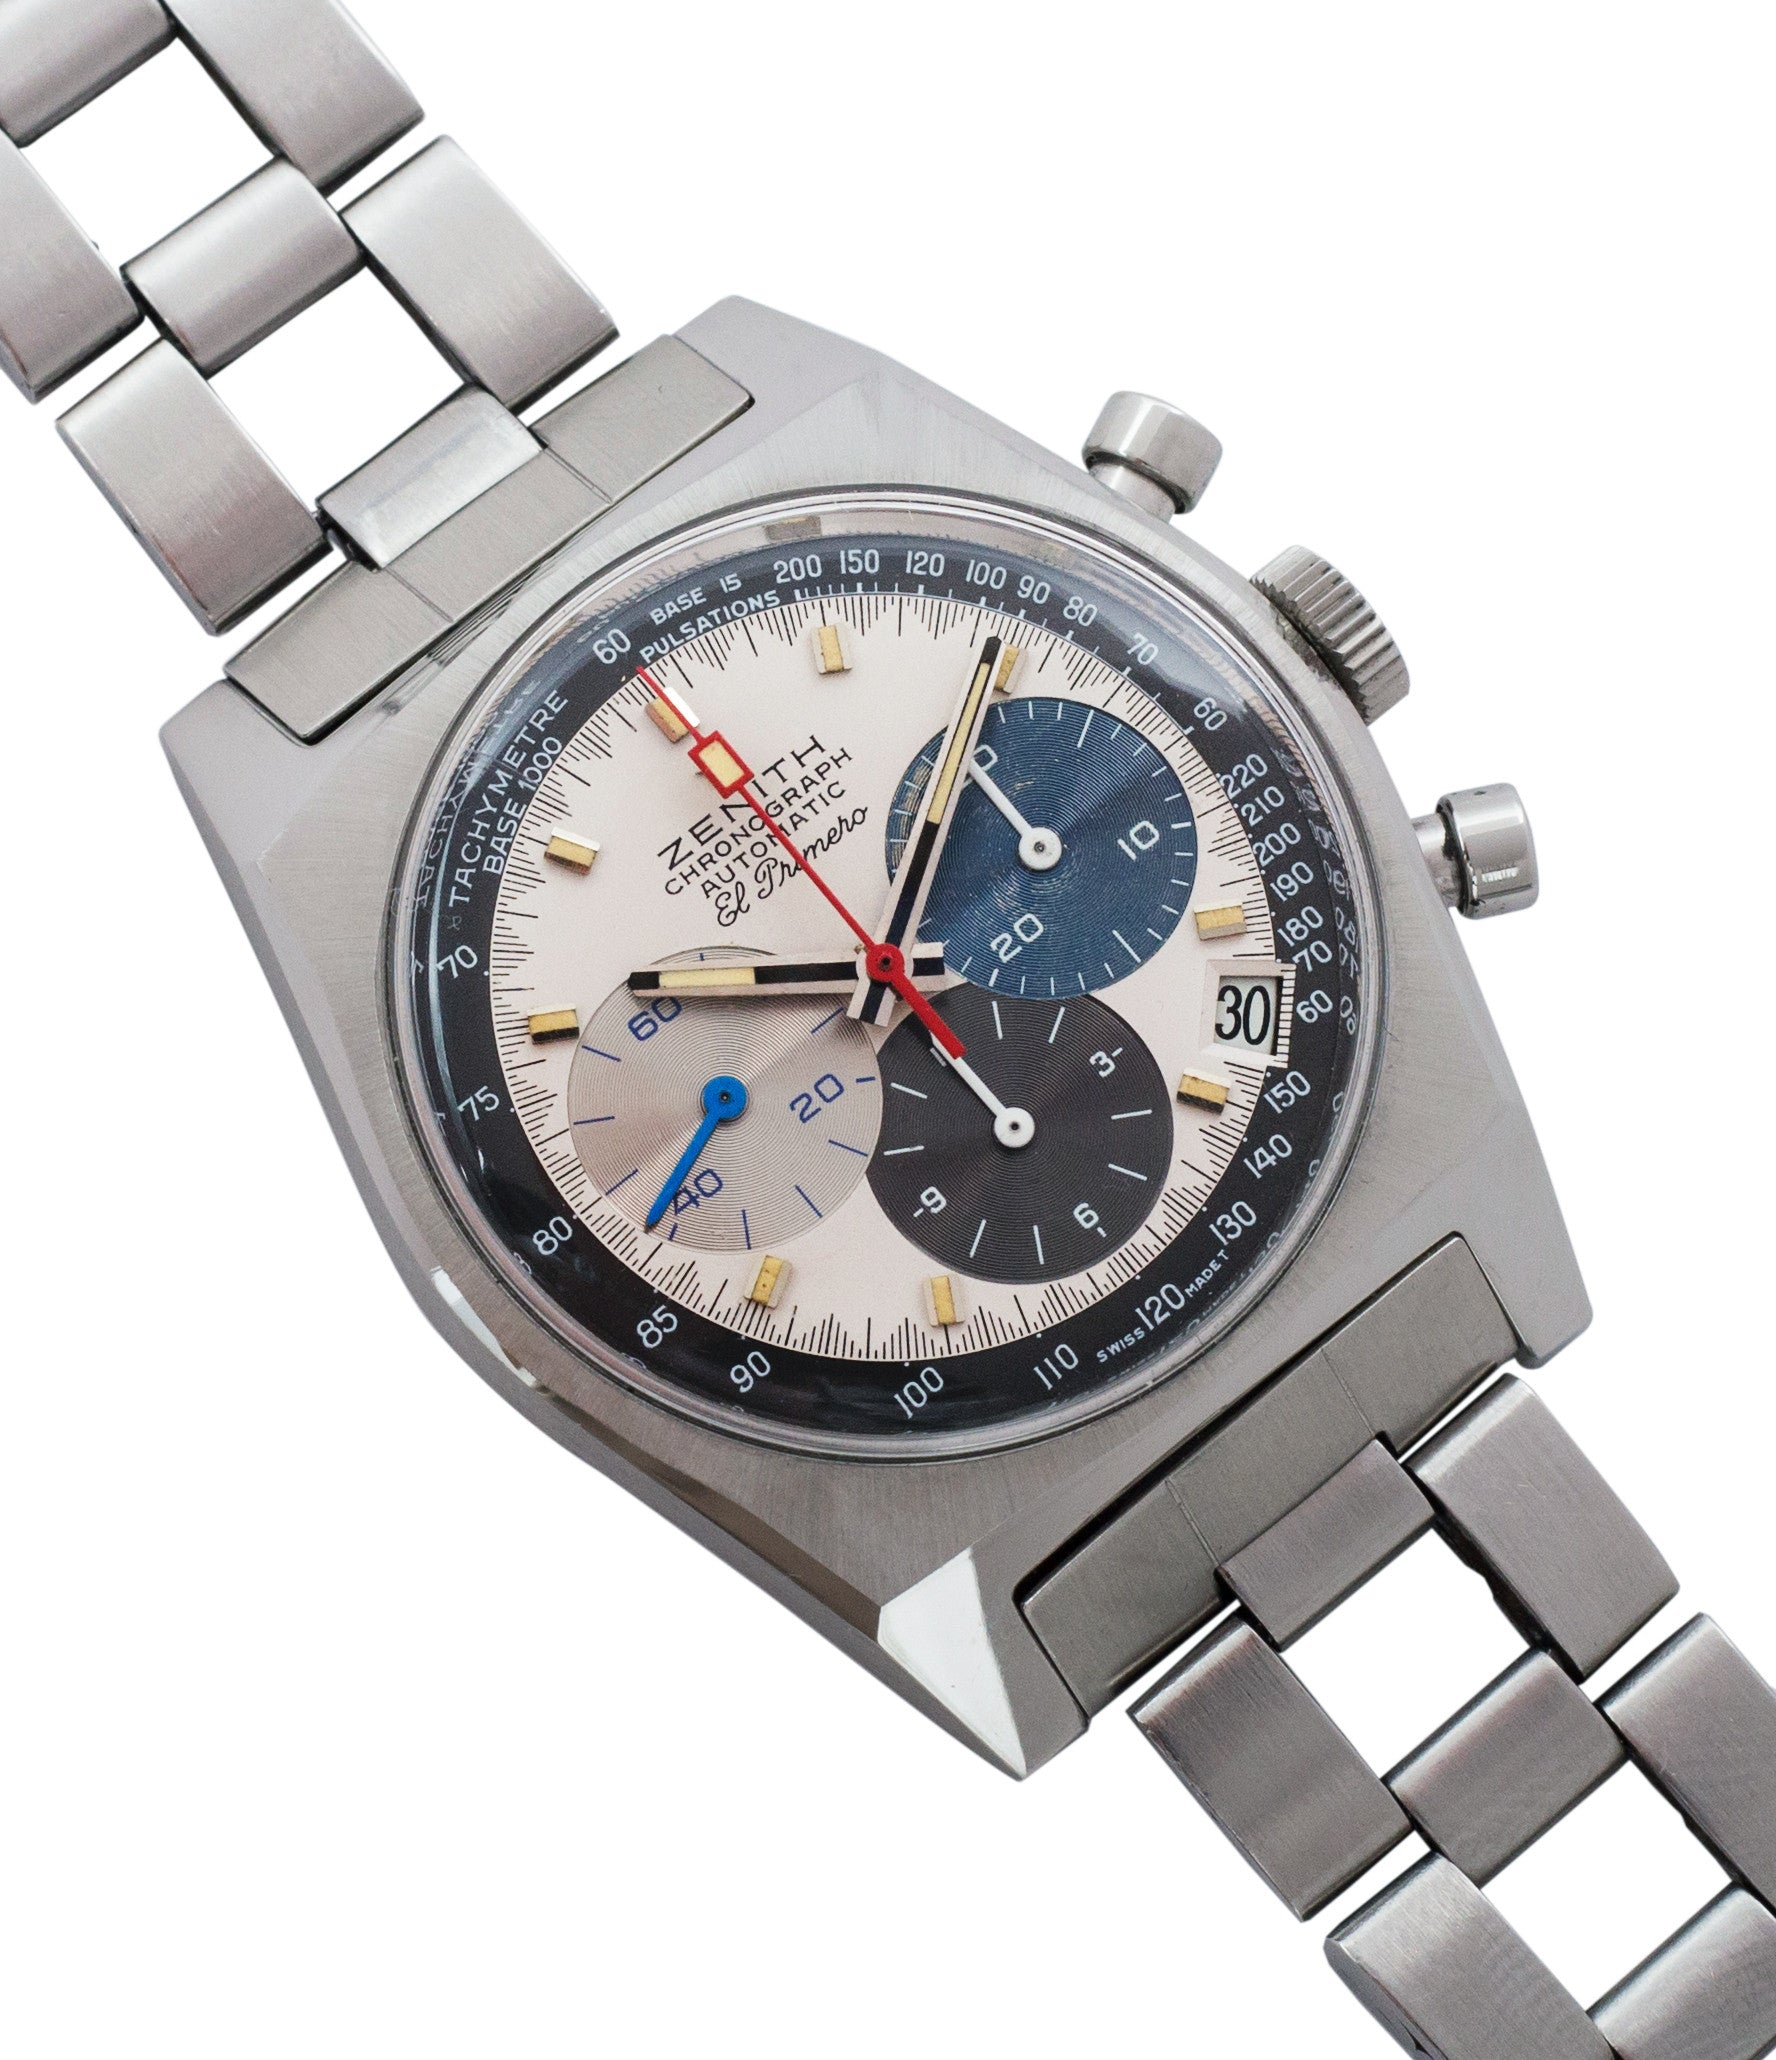 buy Zenith El Primero A3817 steel automatic chronograph vintage watch for sale online at A Collected Man vintage rare watch specialist